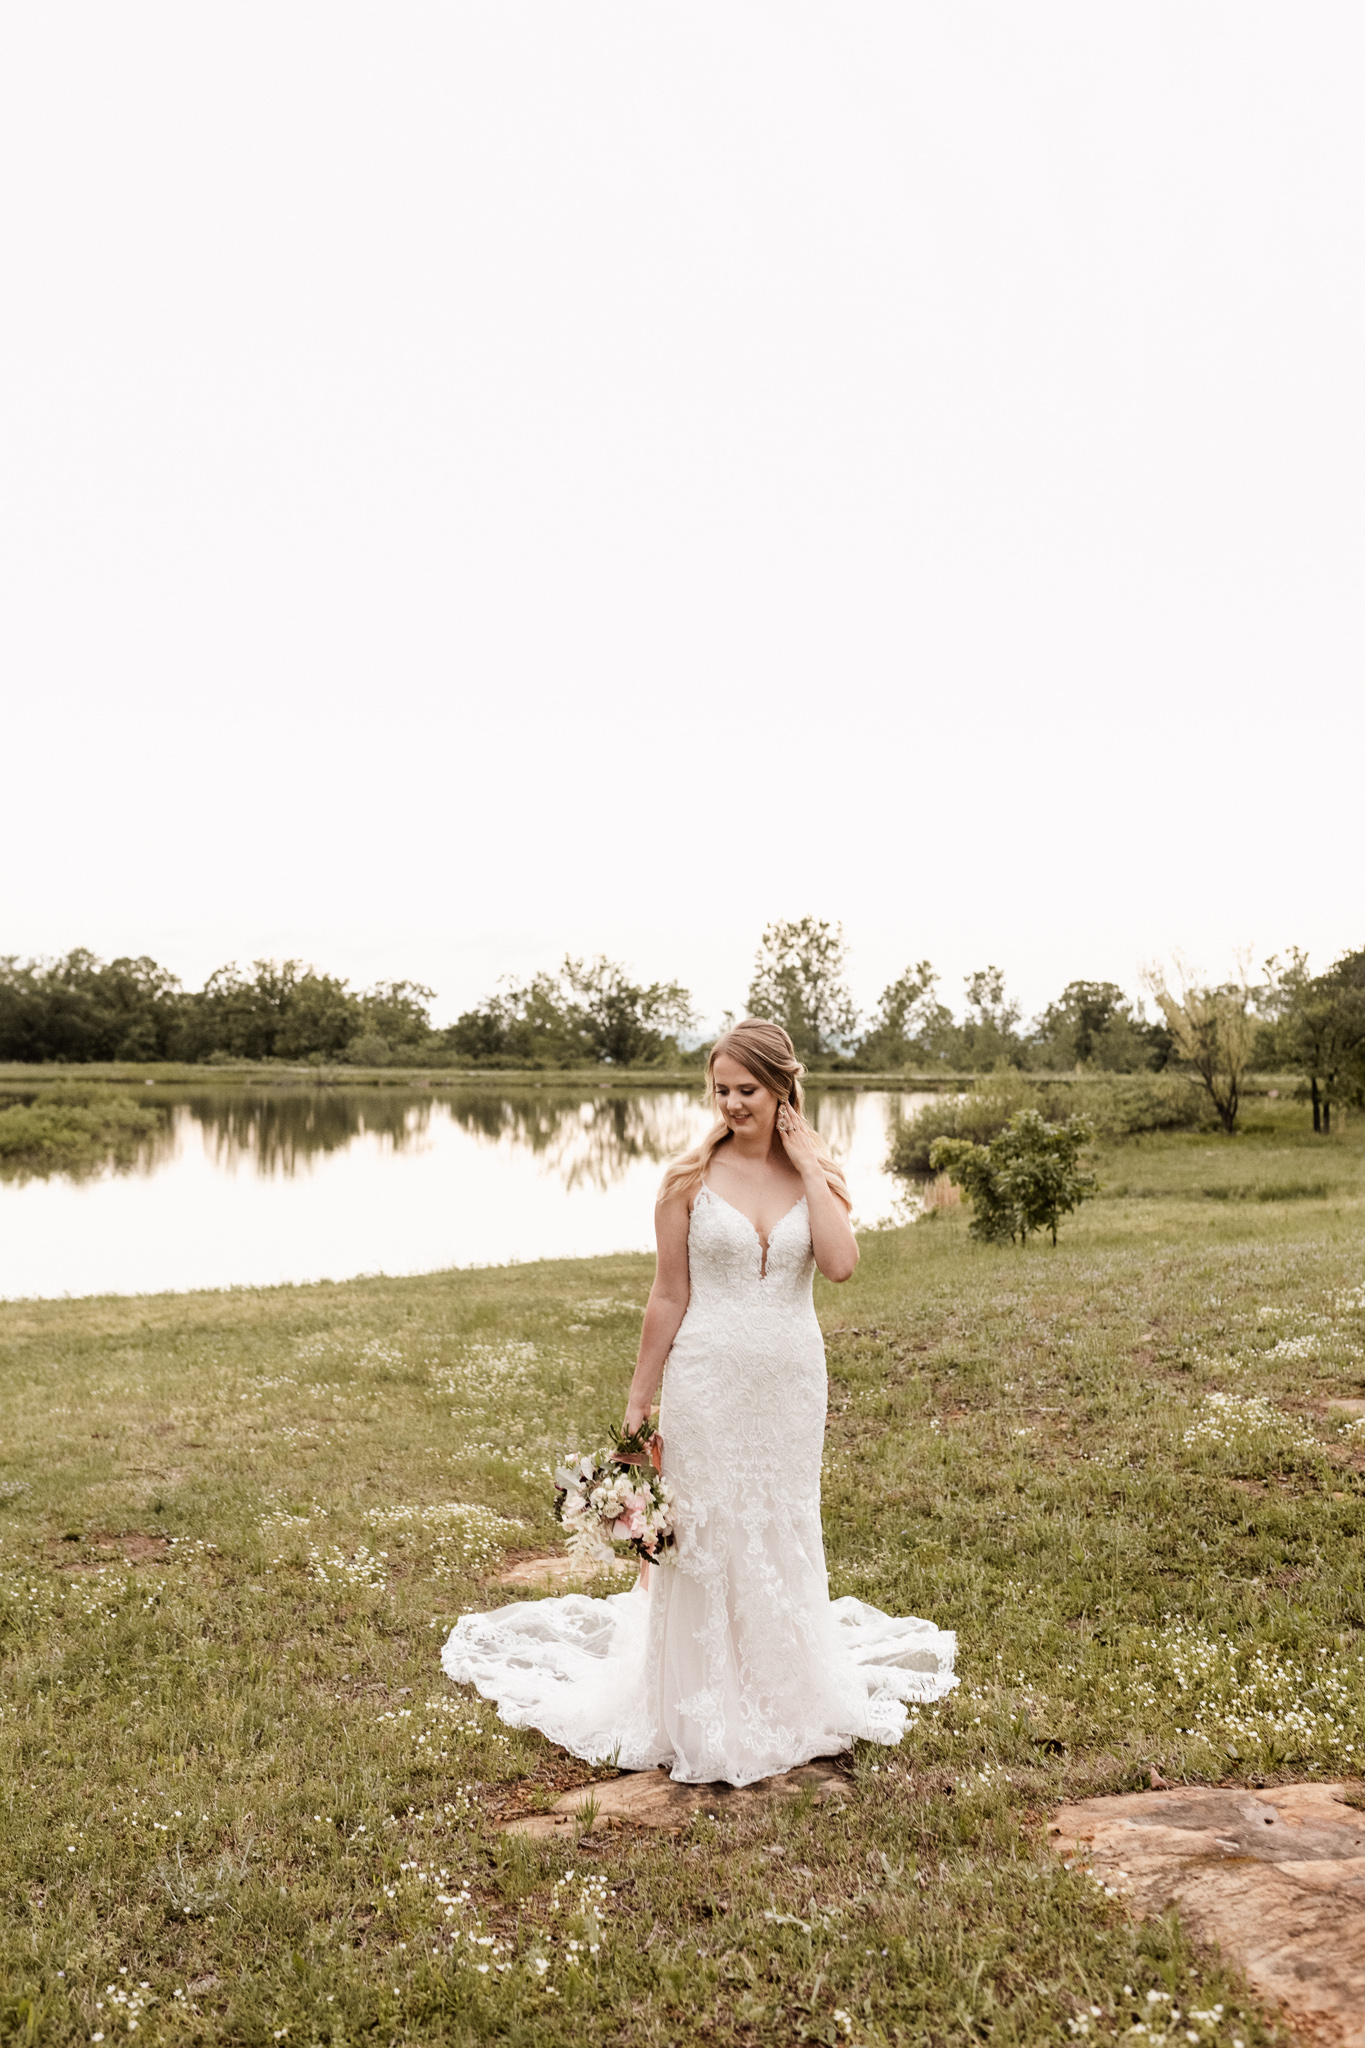 Brittany | Romantic Outdoor Bridals | Oklahoma Wedding Photographer-22.jpg